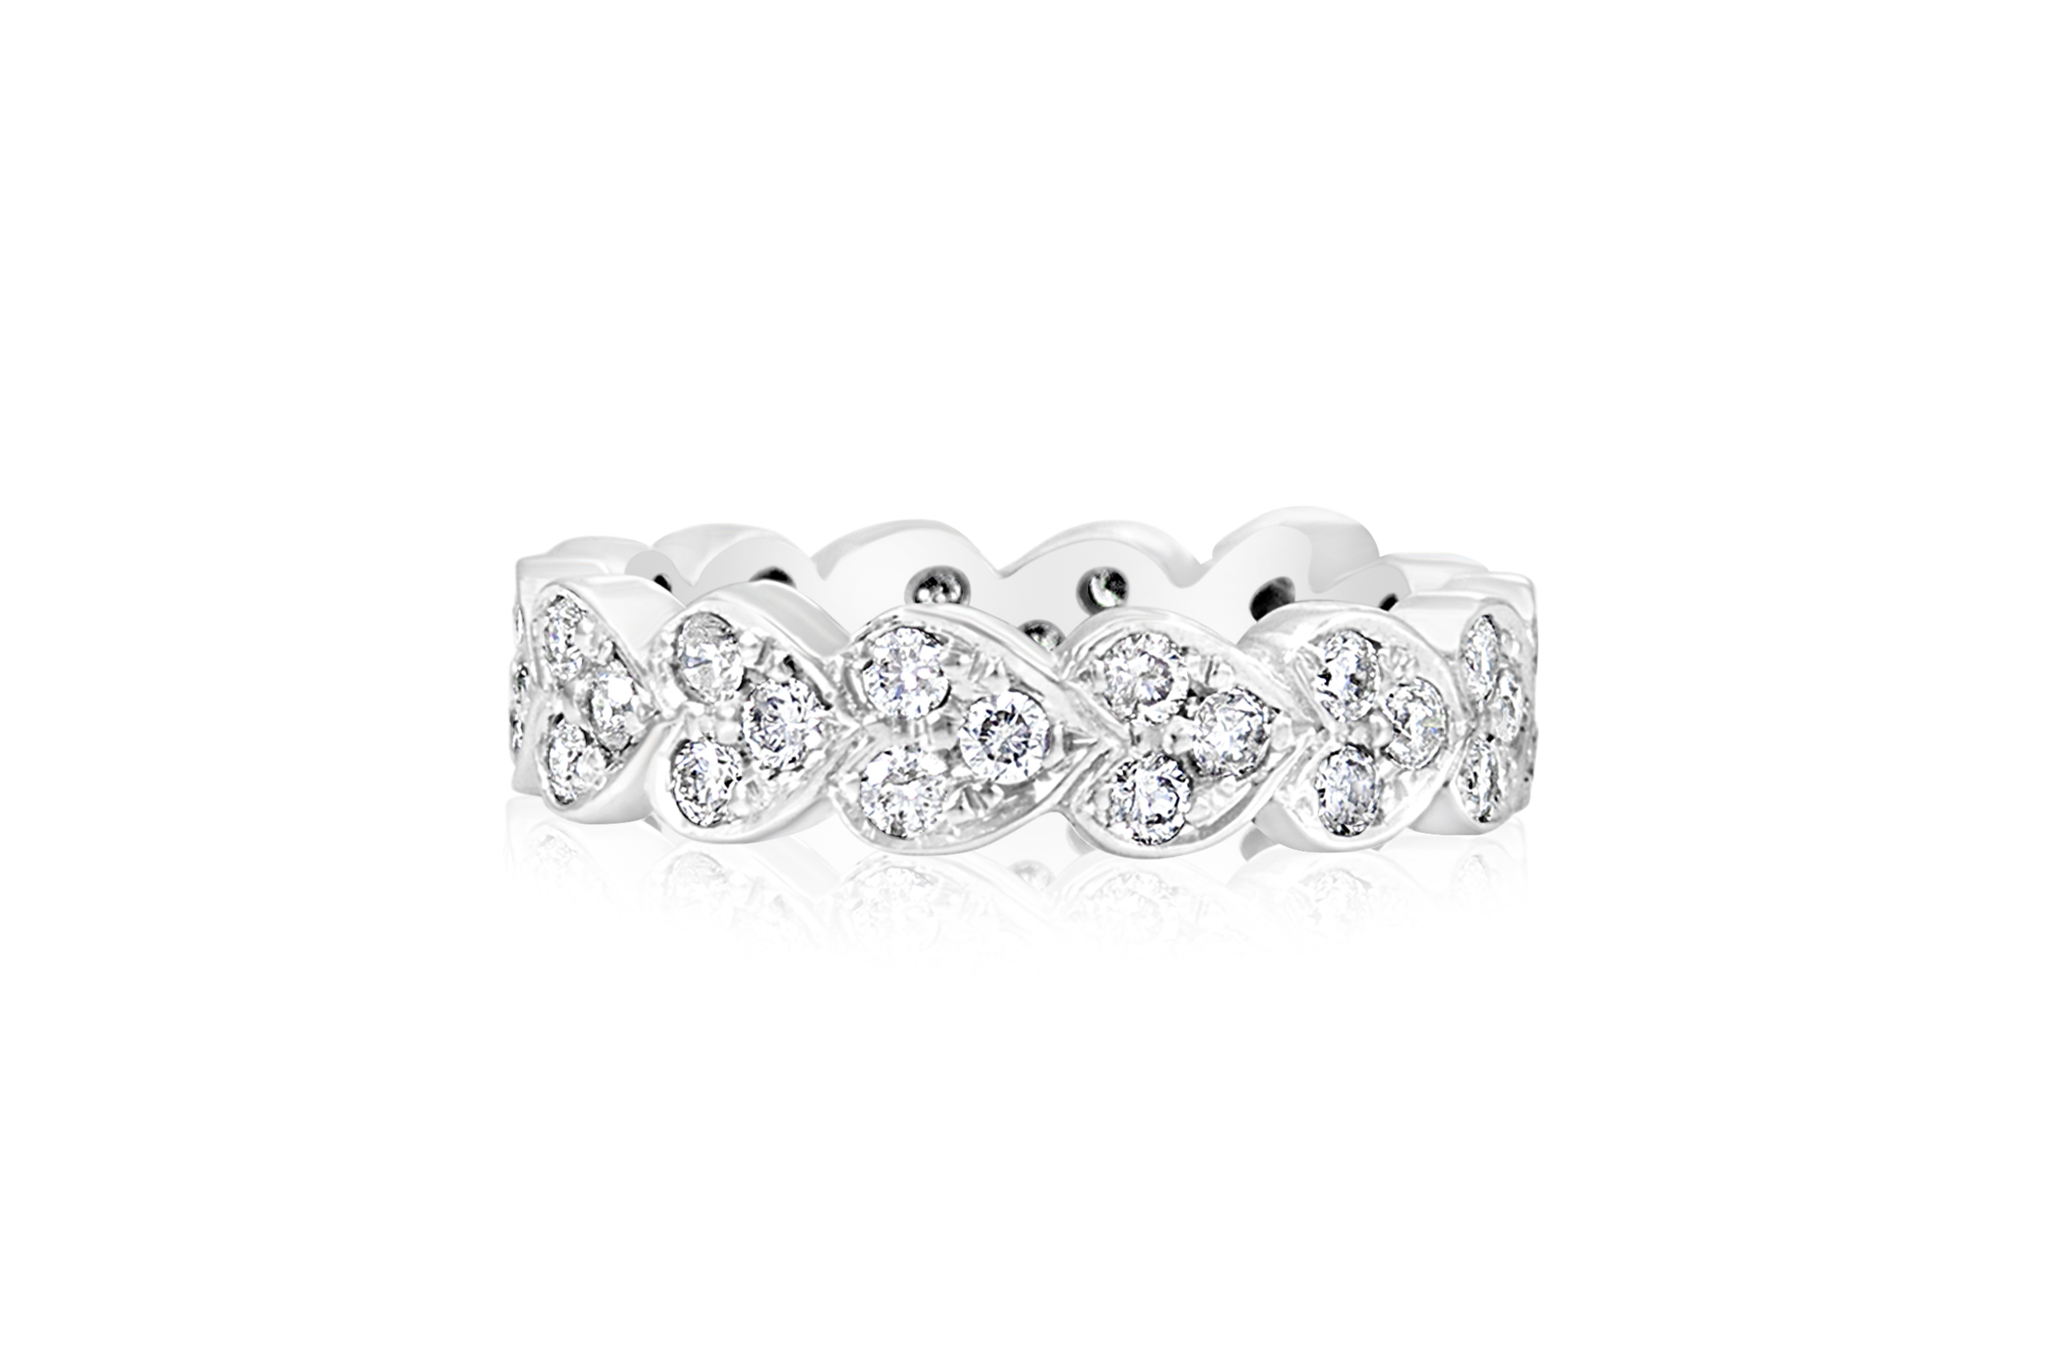 Heart Eternity Band Diamond Engagement Ring In 2019 White Gold Rings Gold Rings Eternity Bands